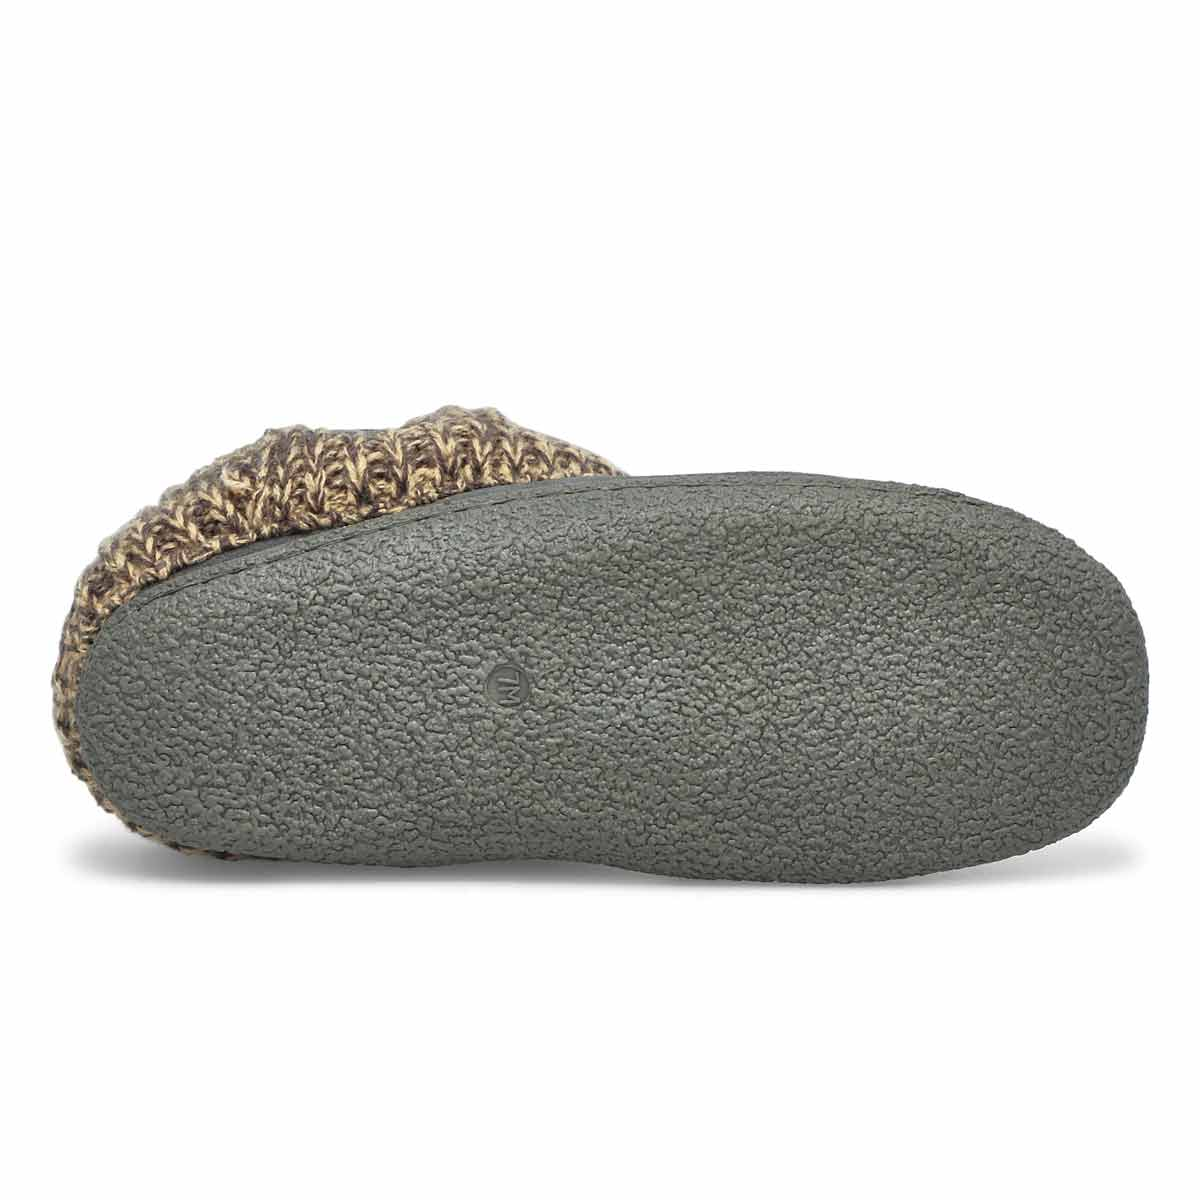 Lds Dini grey memory foam slipper